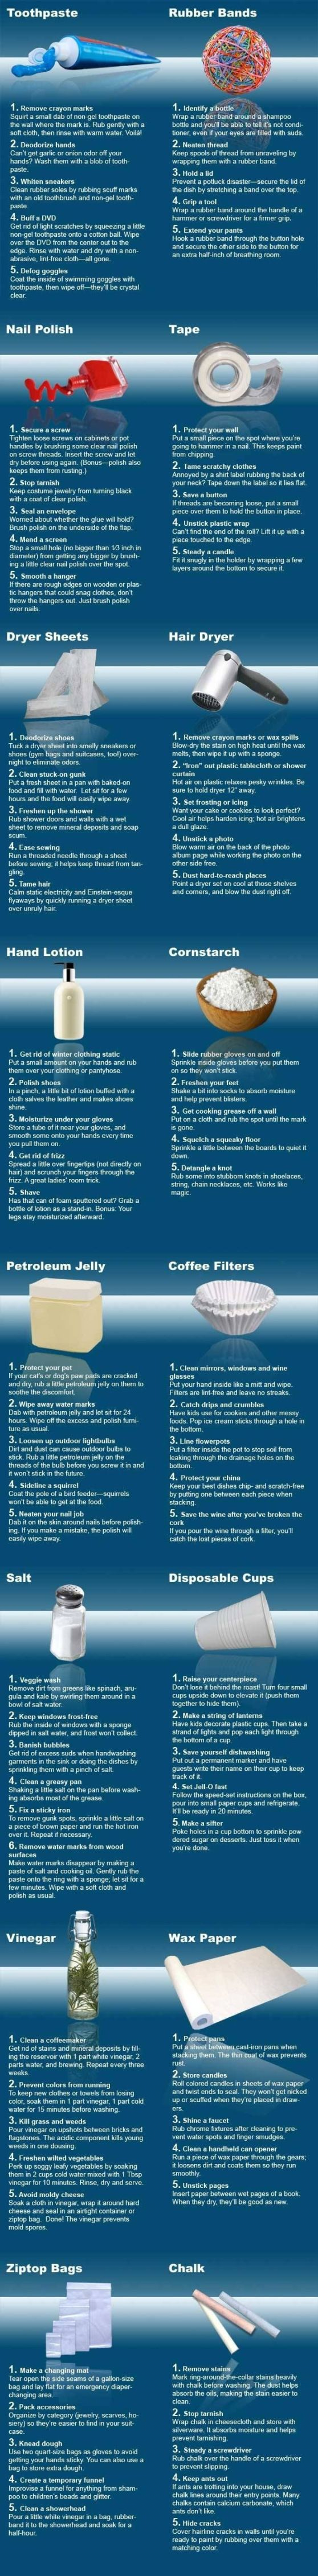 Life Hacks   Uncommon uses for common household items: toothpaste, rubber bands, nail polish, tape, hair dryer, hand lotion, cornstarch, petroleum jelly, coffee filters, salt, disposable cups, vinegar, wax paper, zip-top bags, chalk. (There are a million of these types of pins, but this is the first one I actually found useful.)